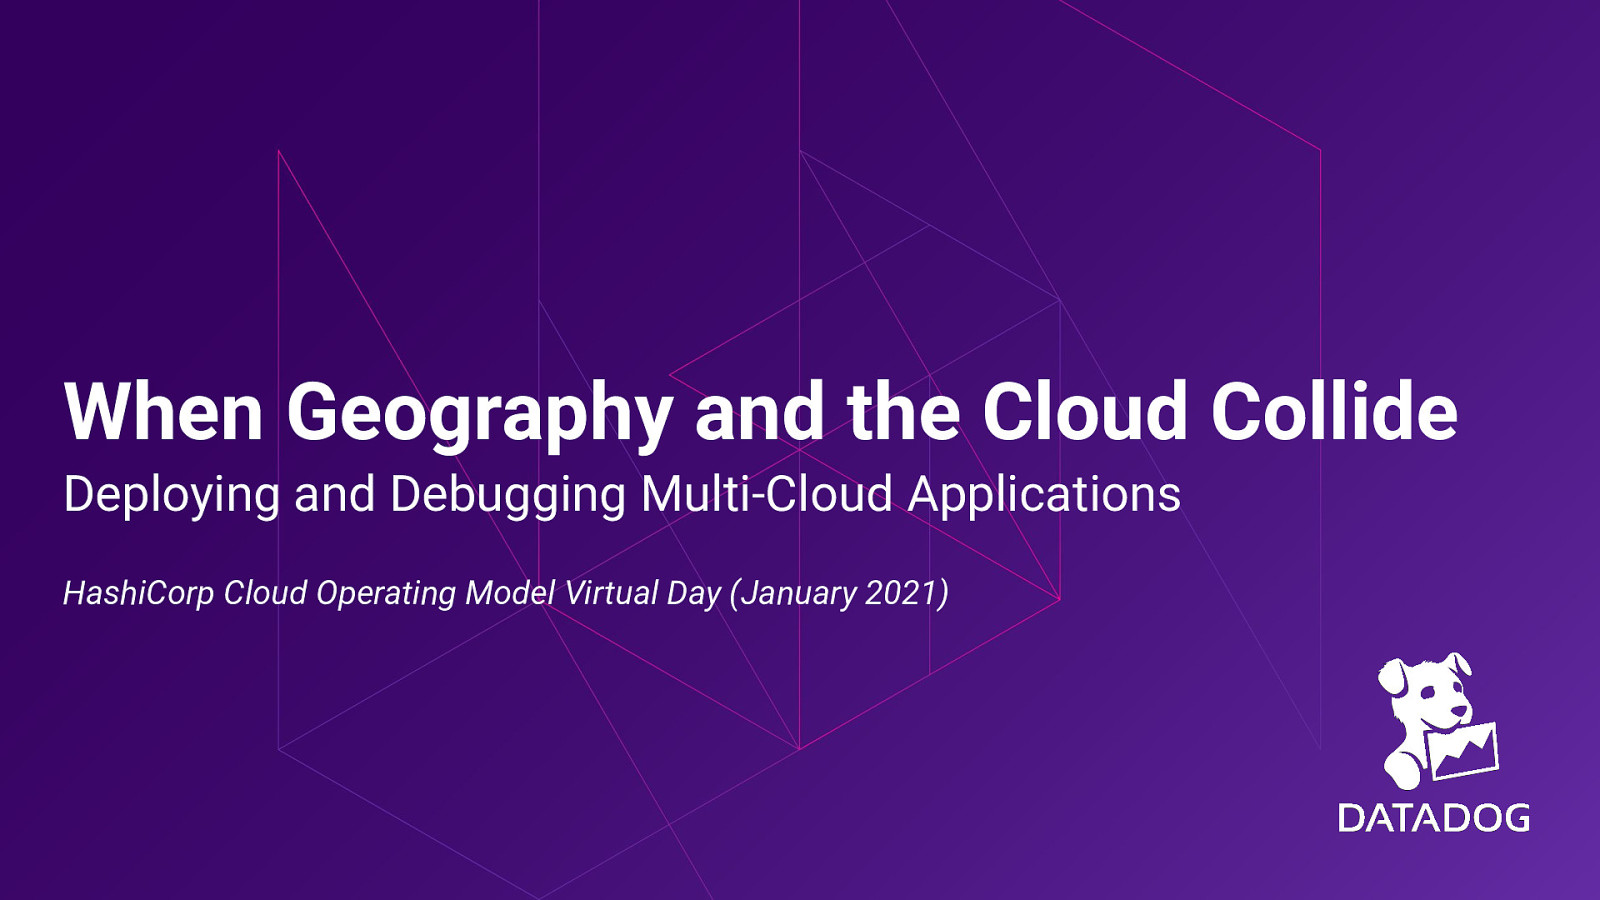 When Geography and the Cloud Collide